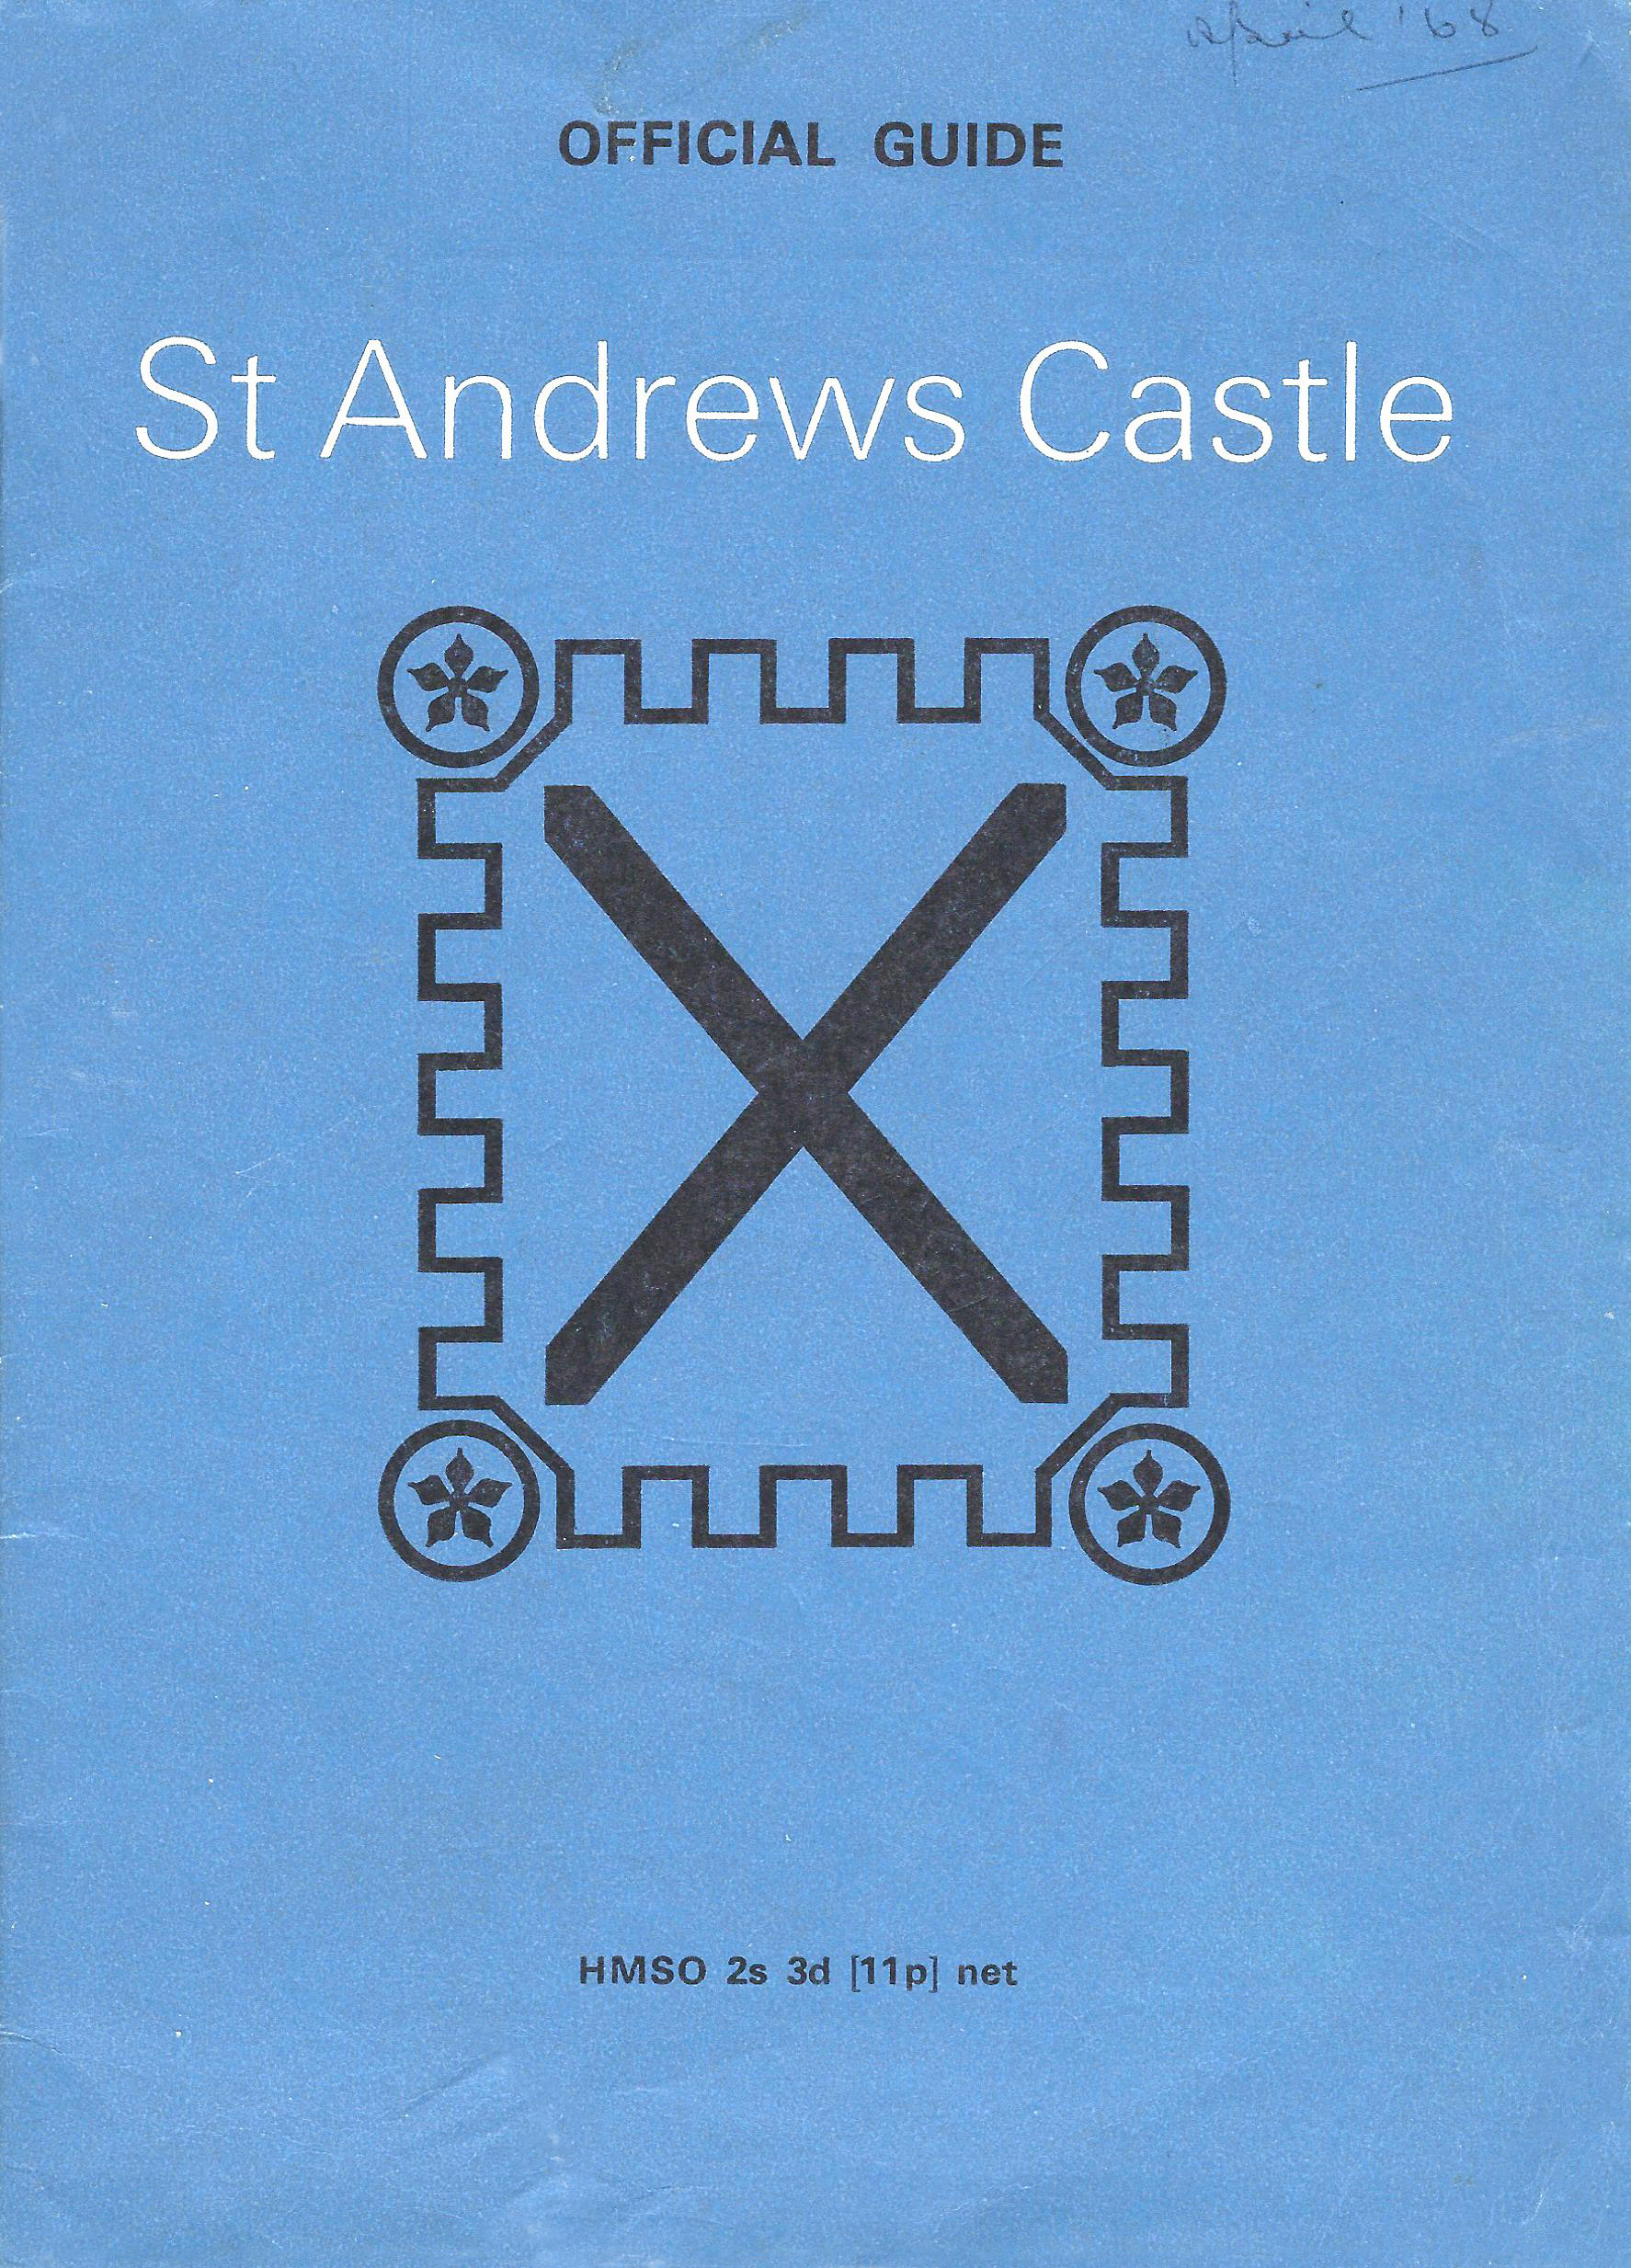 StAndrews_castle_blue